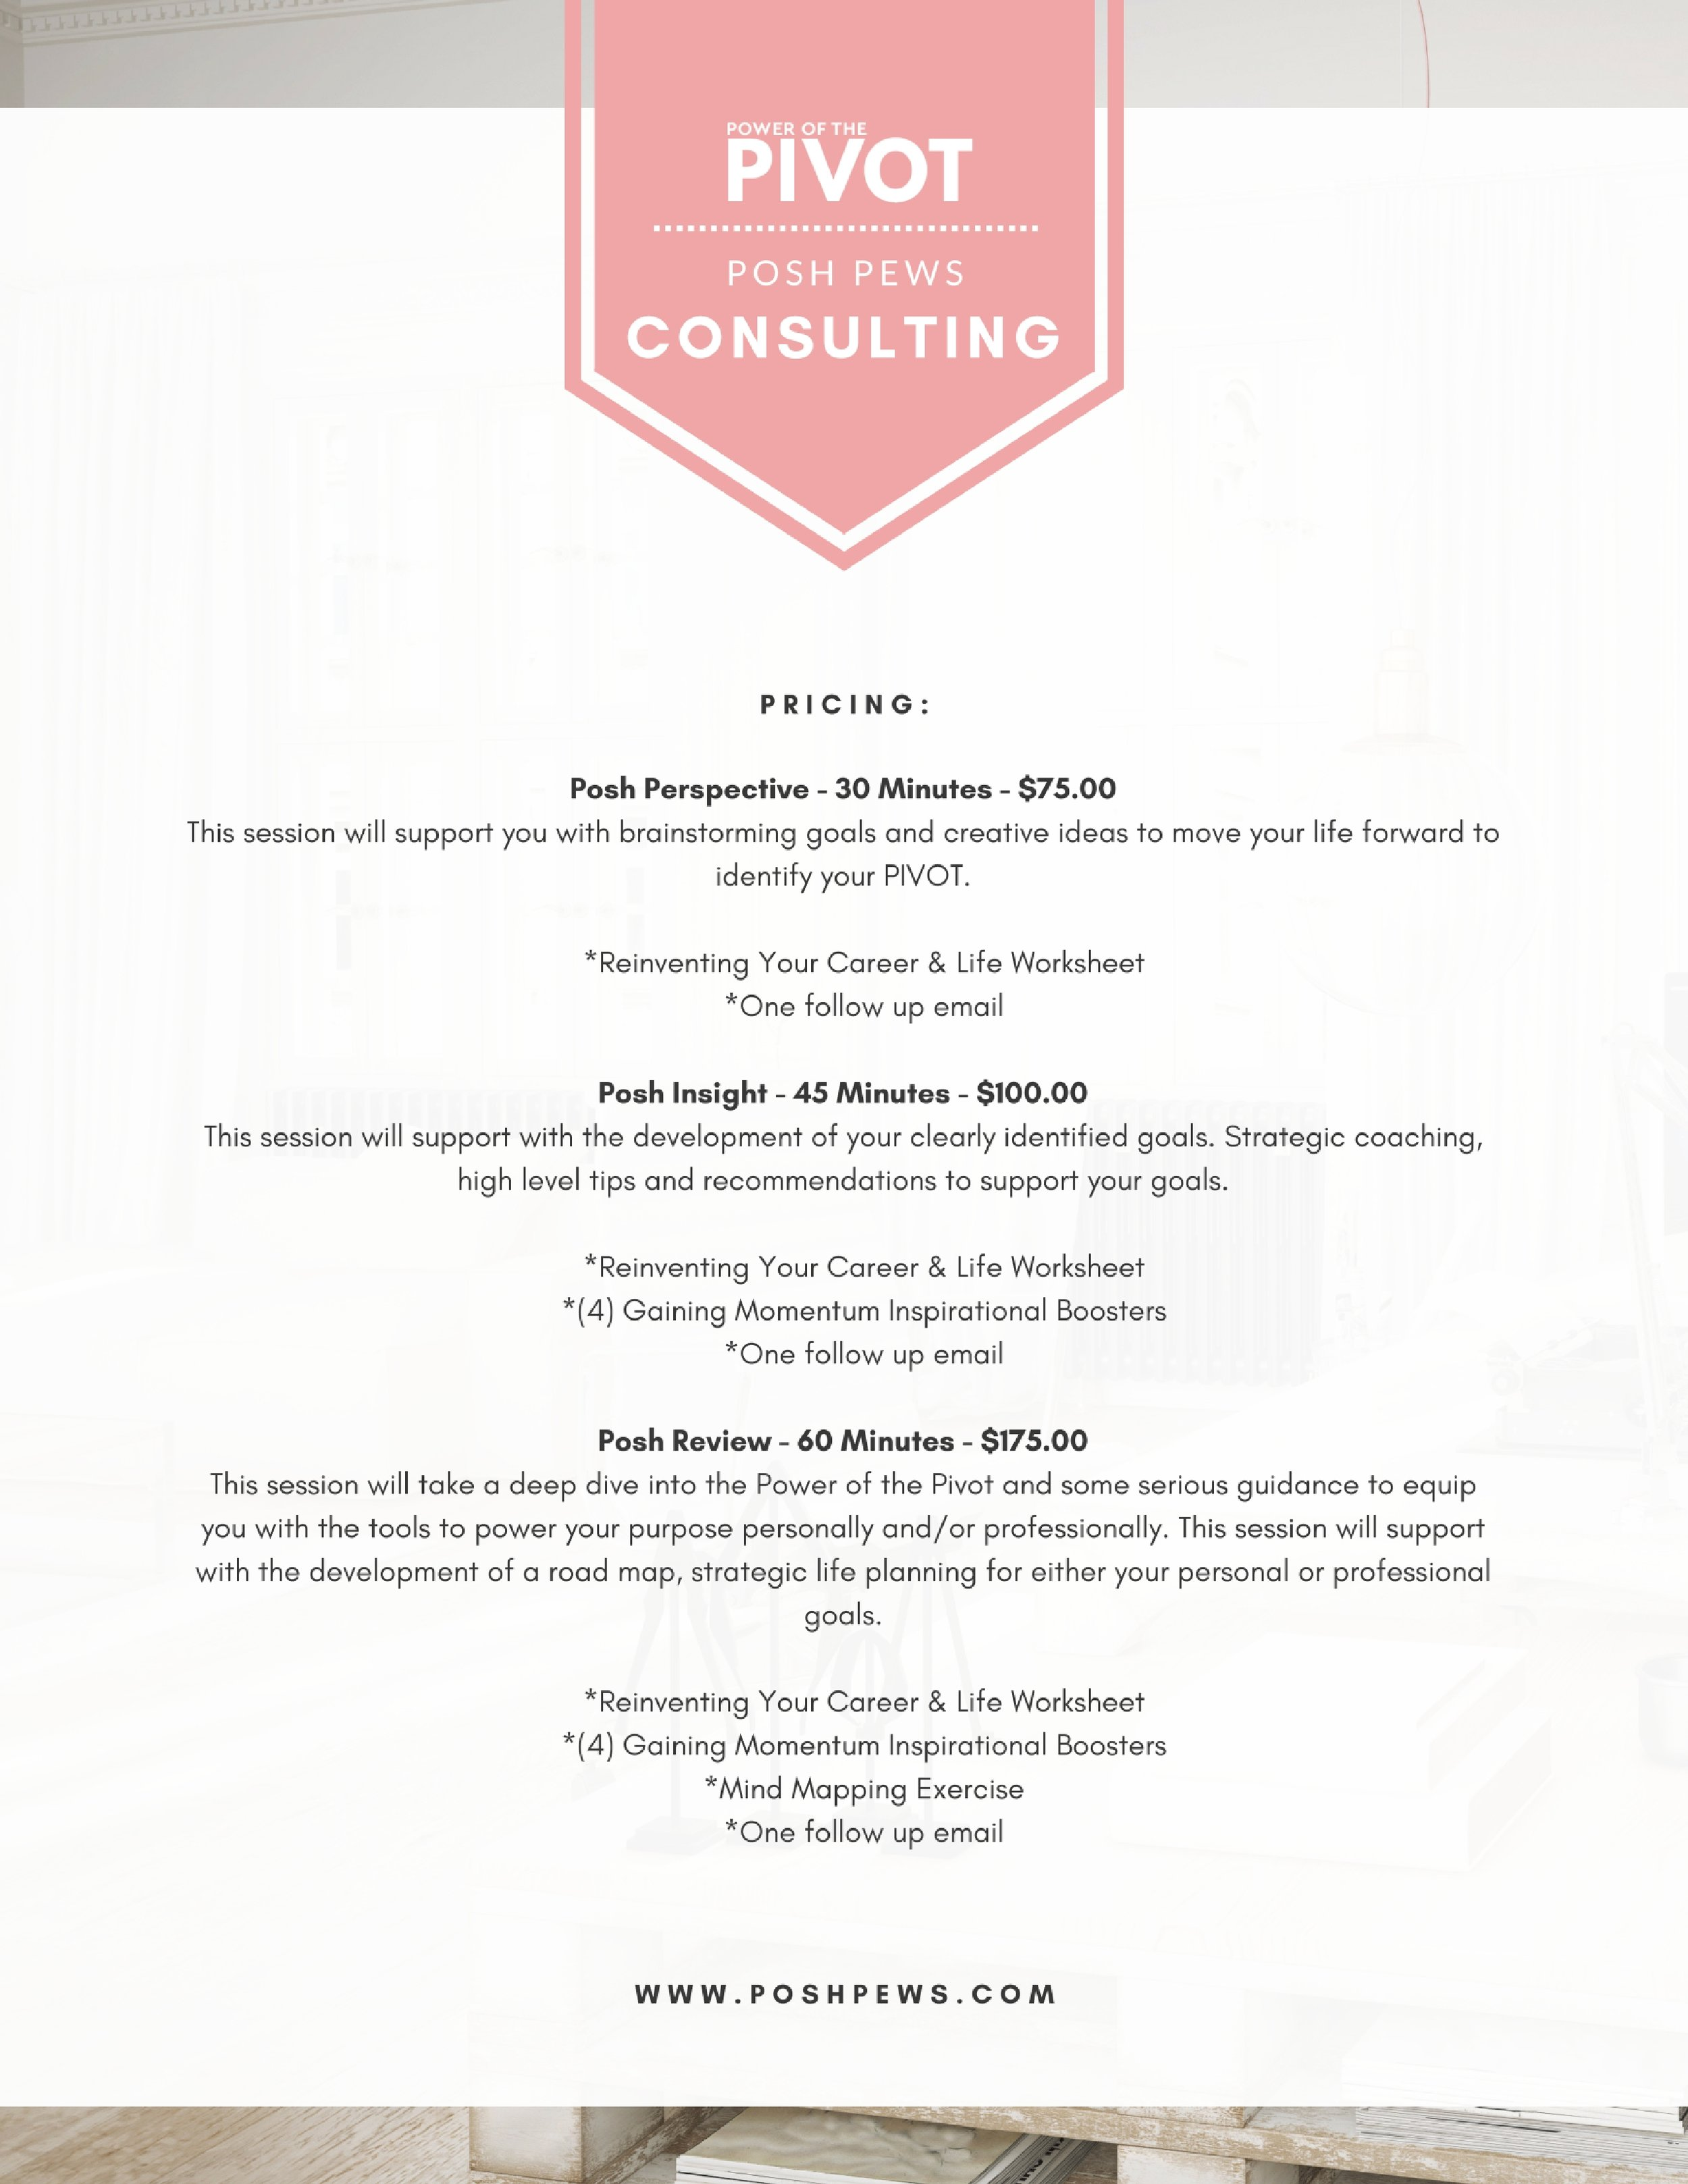 poshpews-consulting-fees